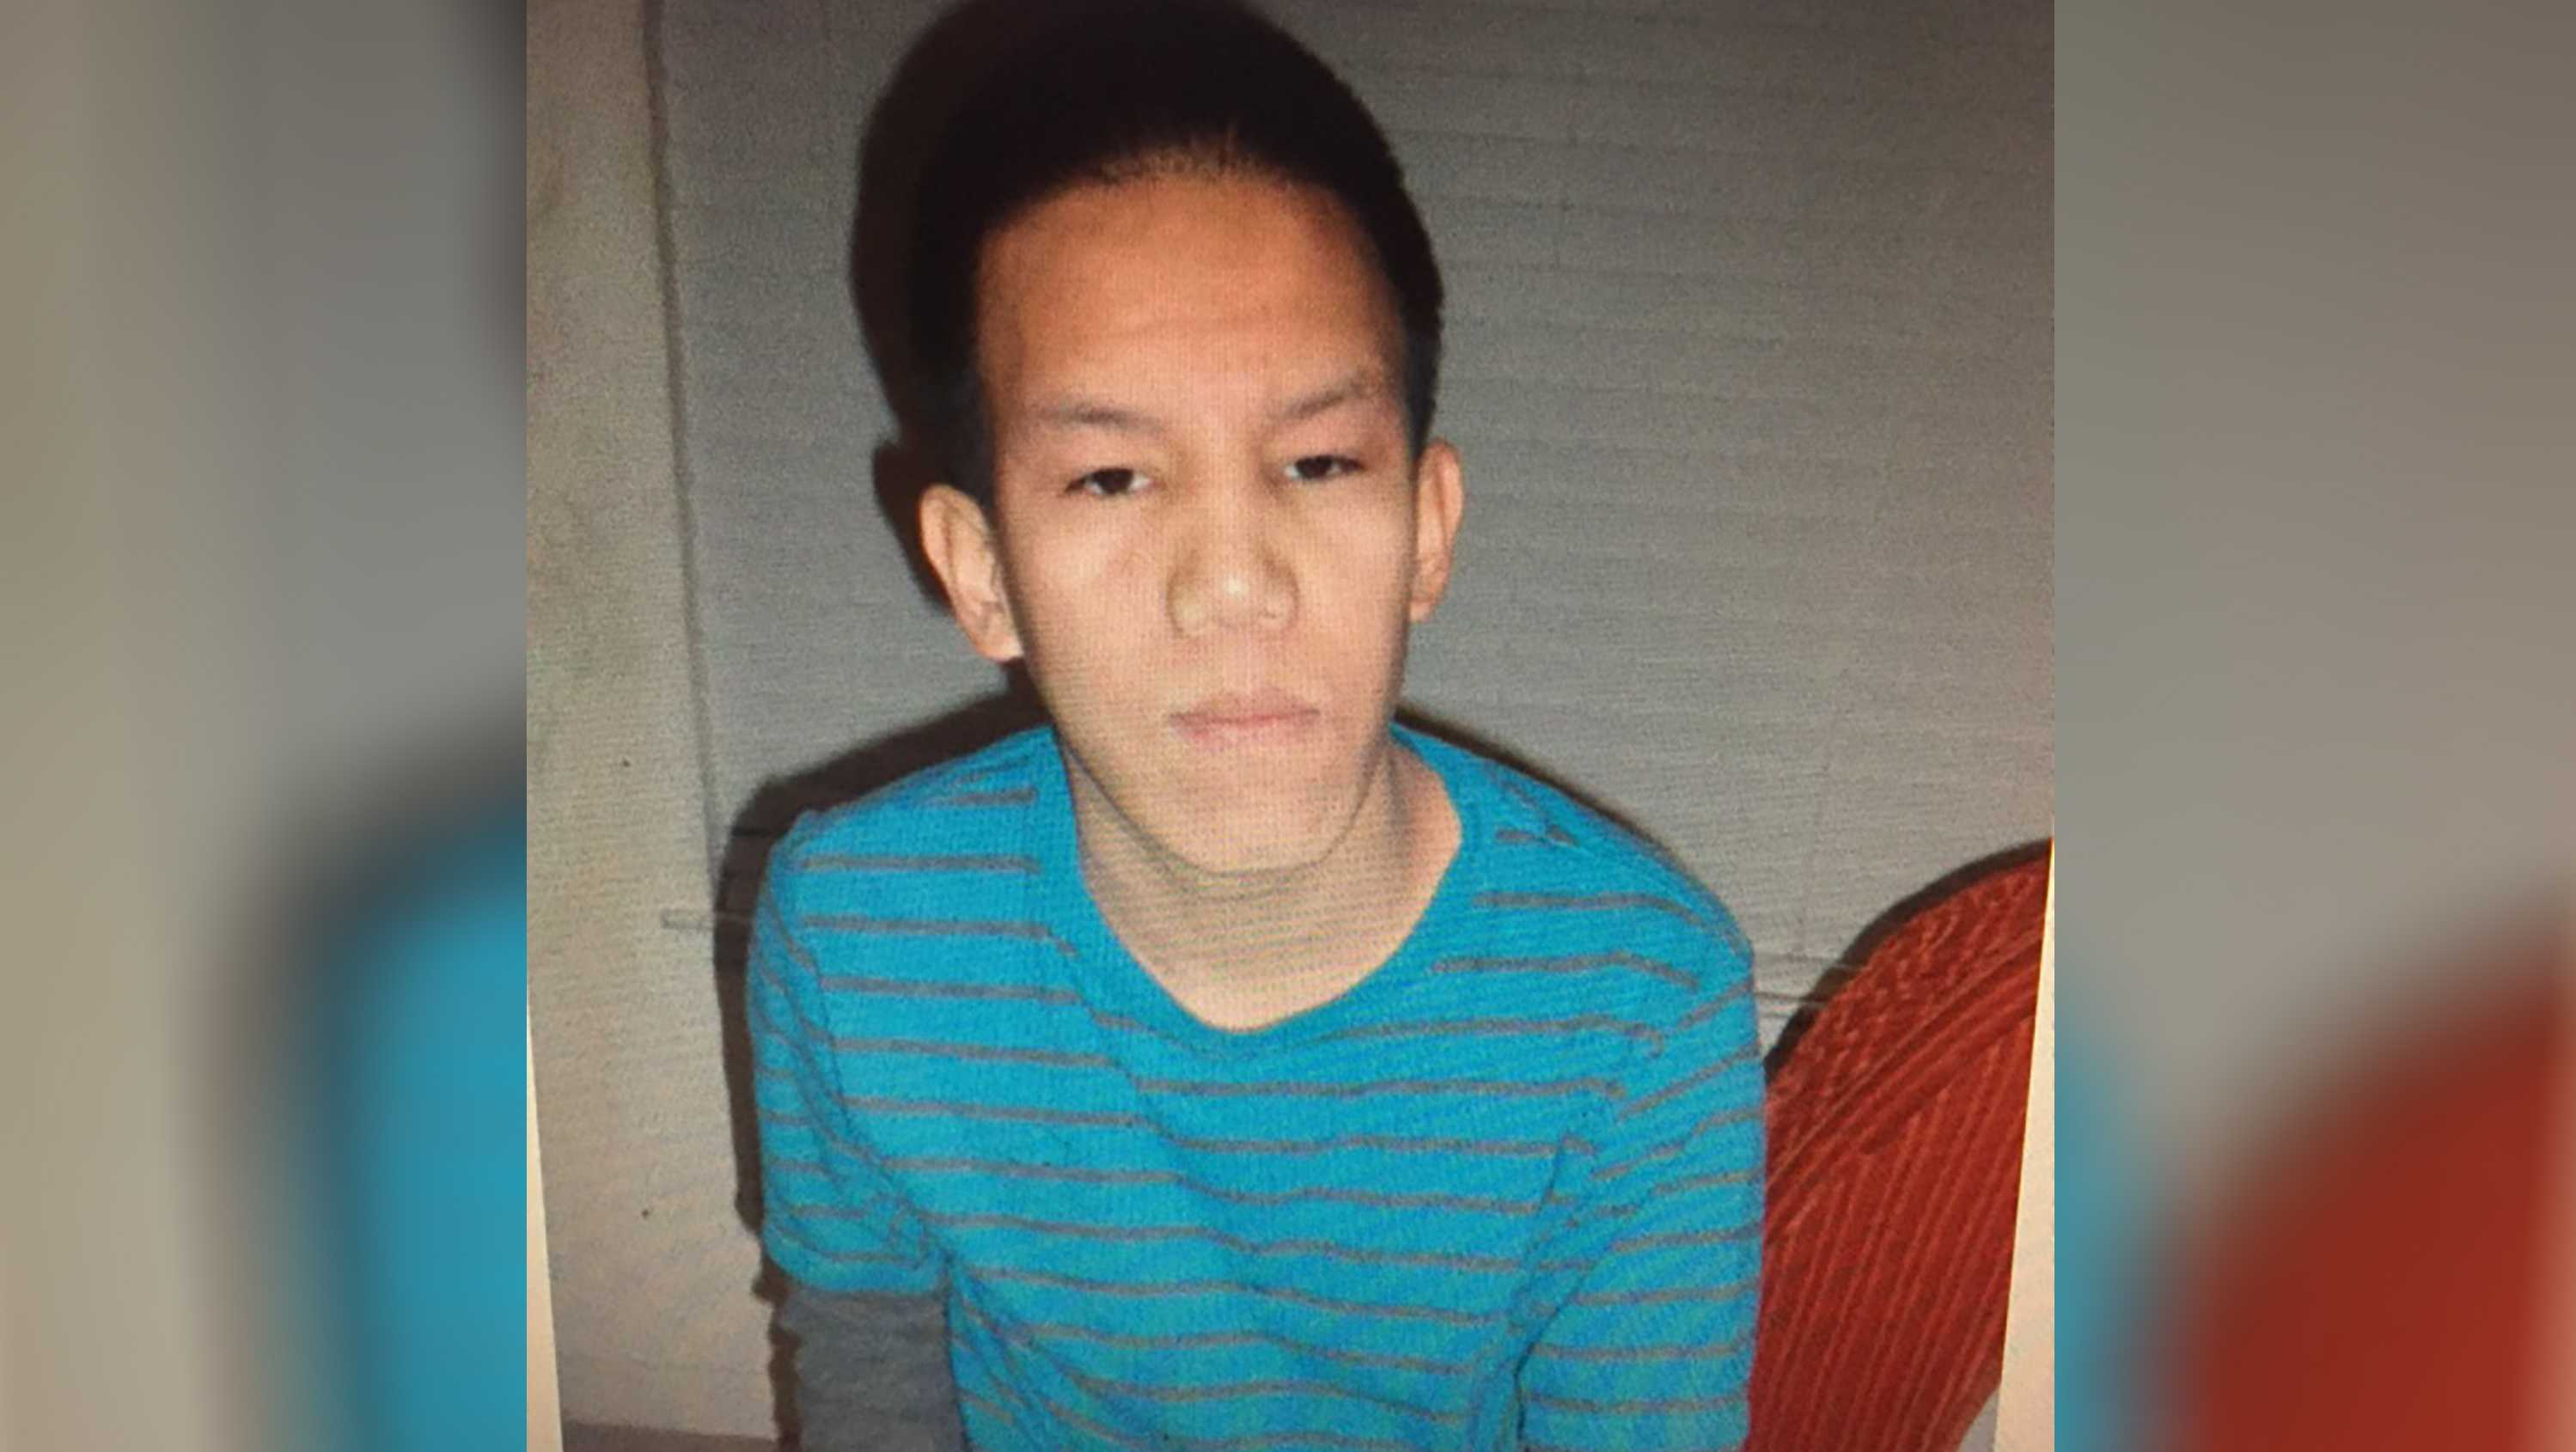 Daniel Chi, 34, was last seen Friday, Oct. 21, deputies said.